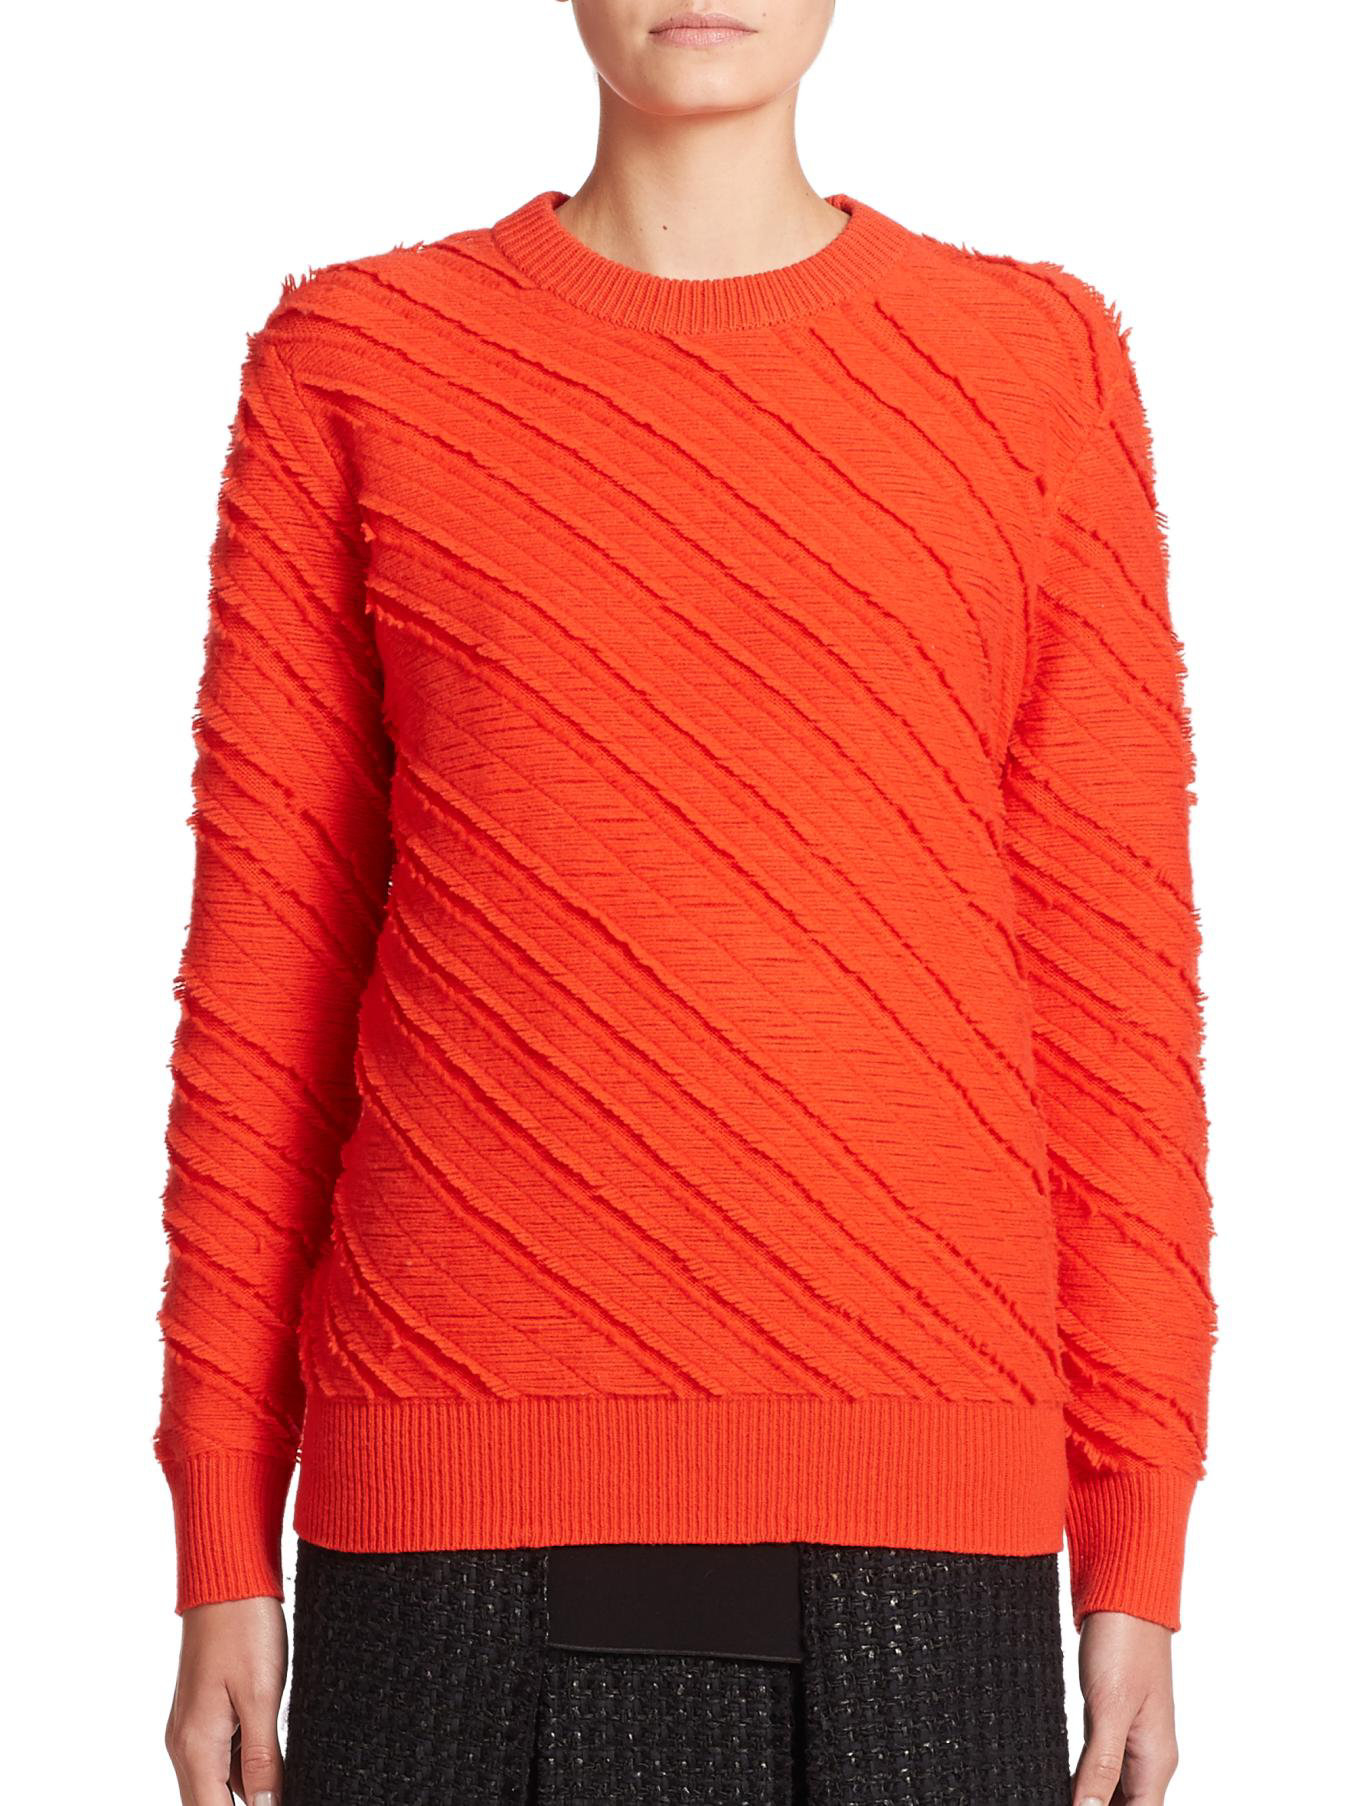 Proenza schouler Fringe Wool Jacquard Sweater in Red | Lyst